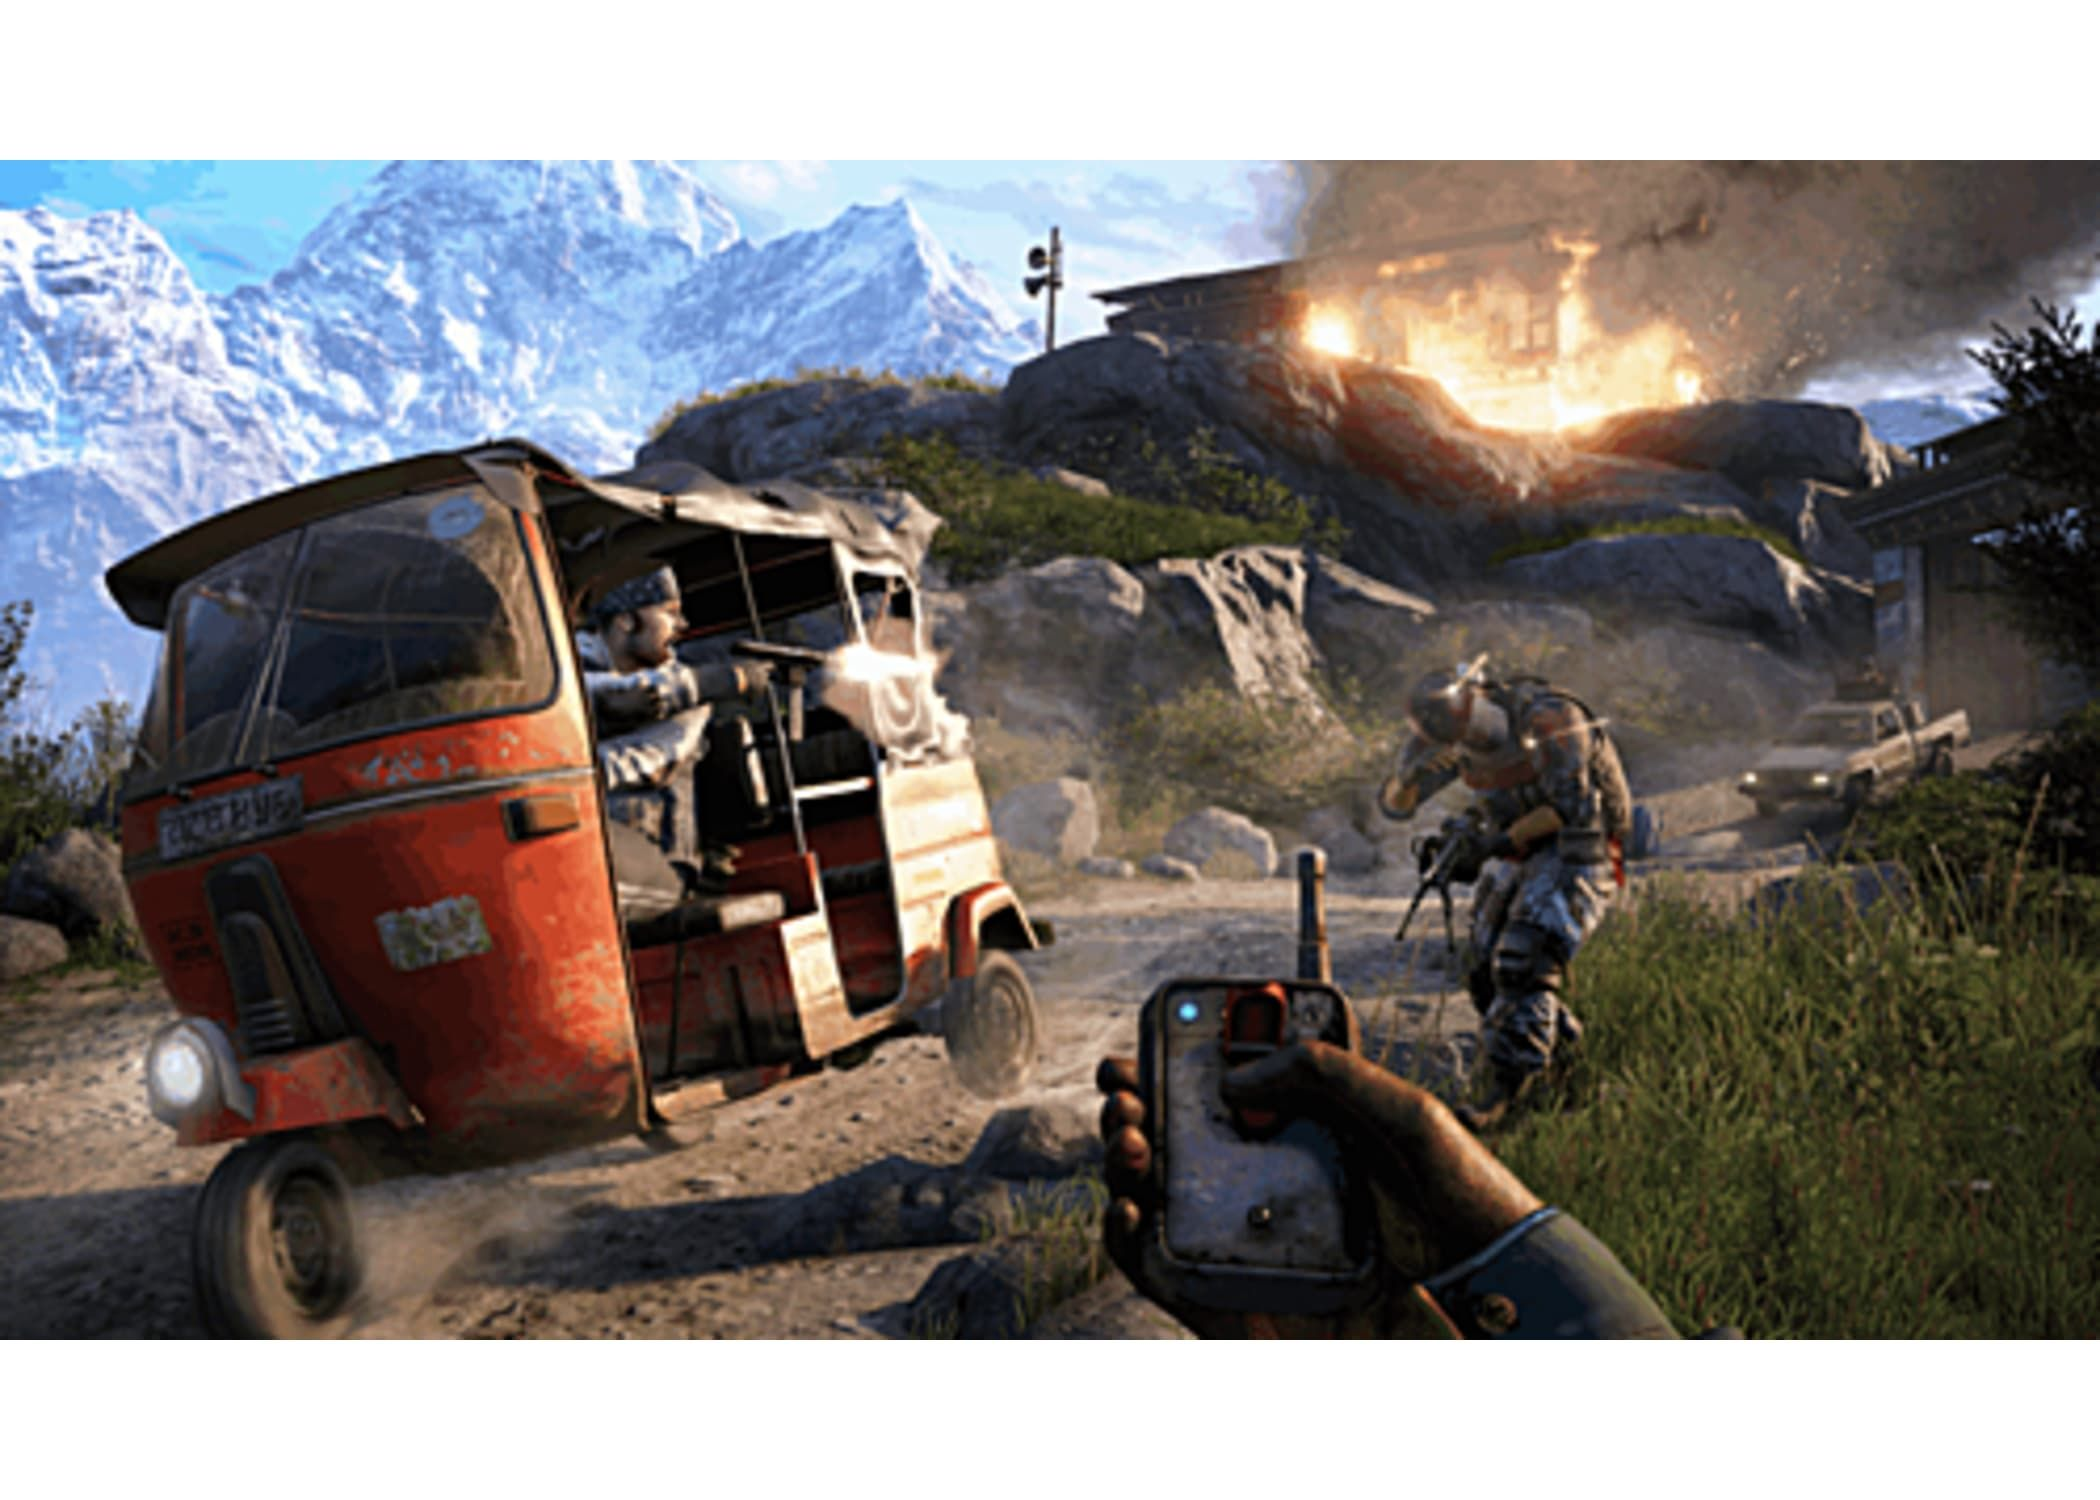 Far Cry 4 Limited Edition With Yak Farm Pack Mission En 2020 Far Cry 4 Gamers Salvaje